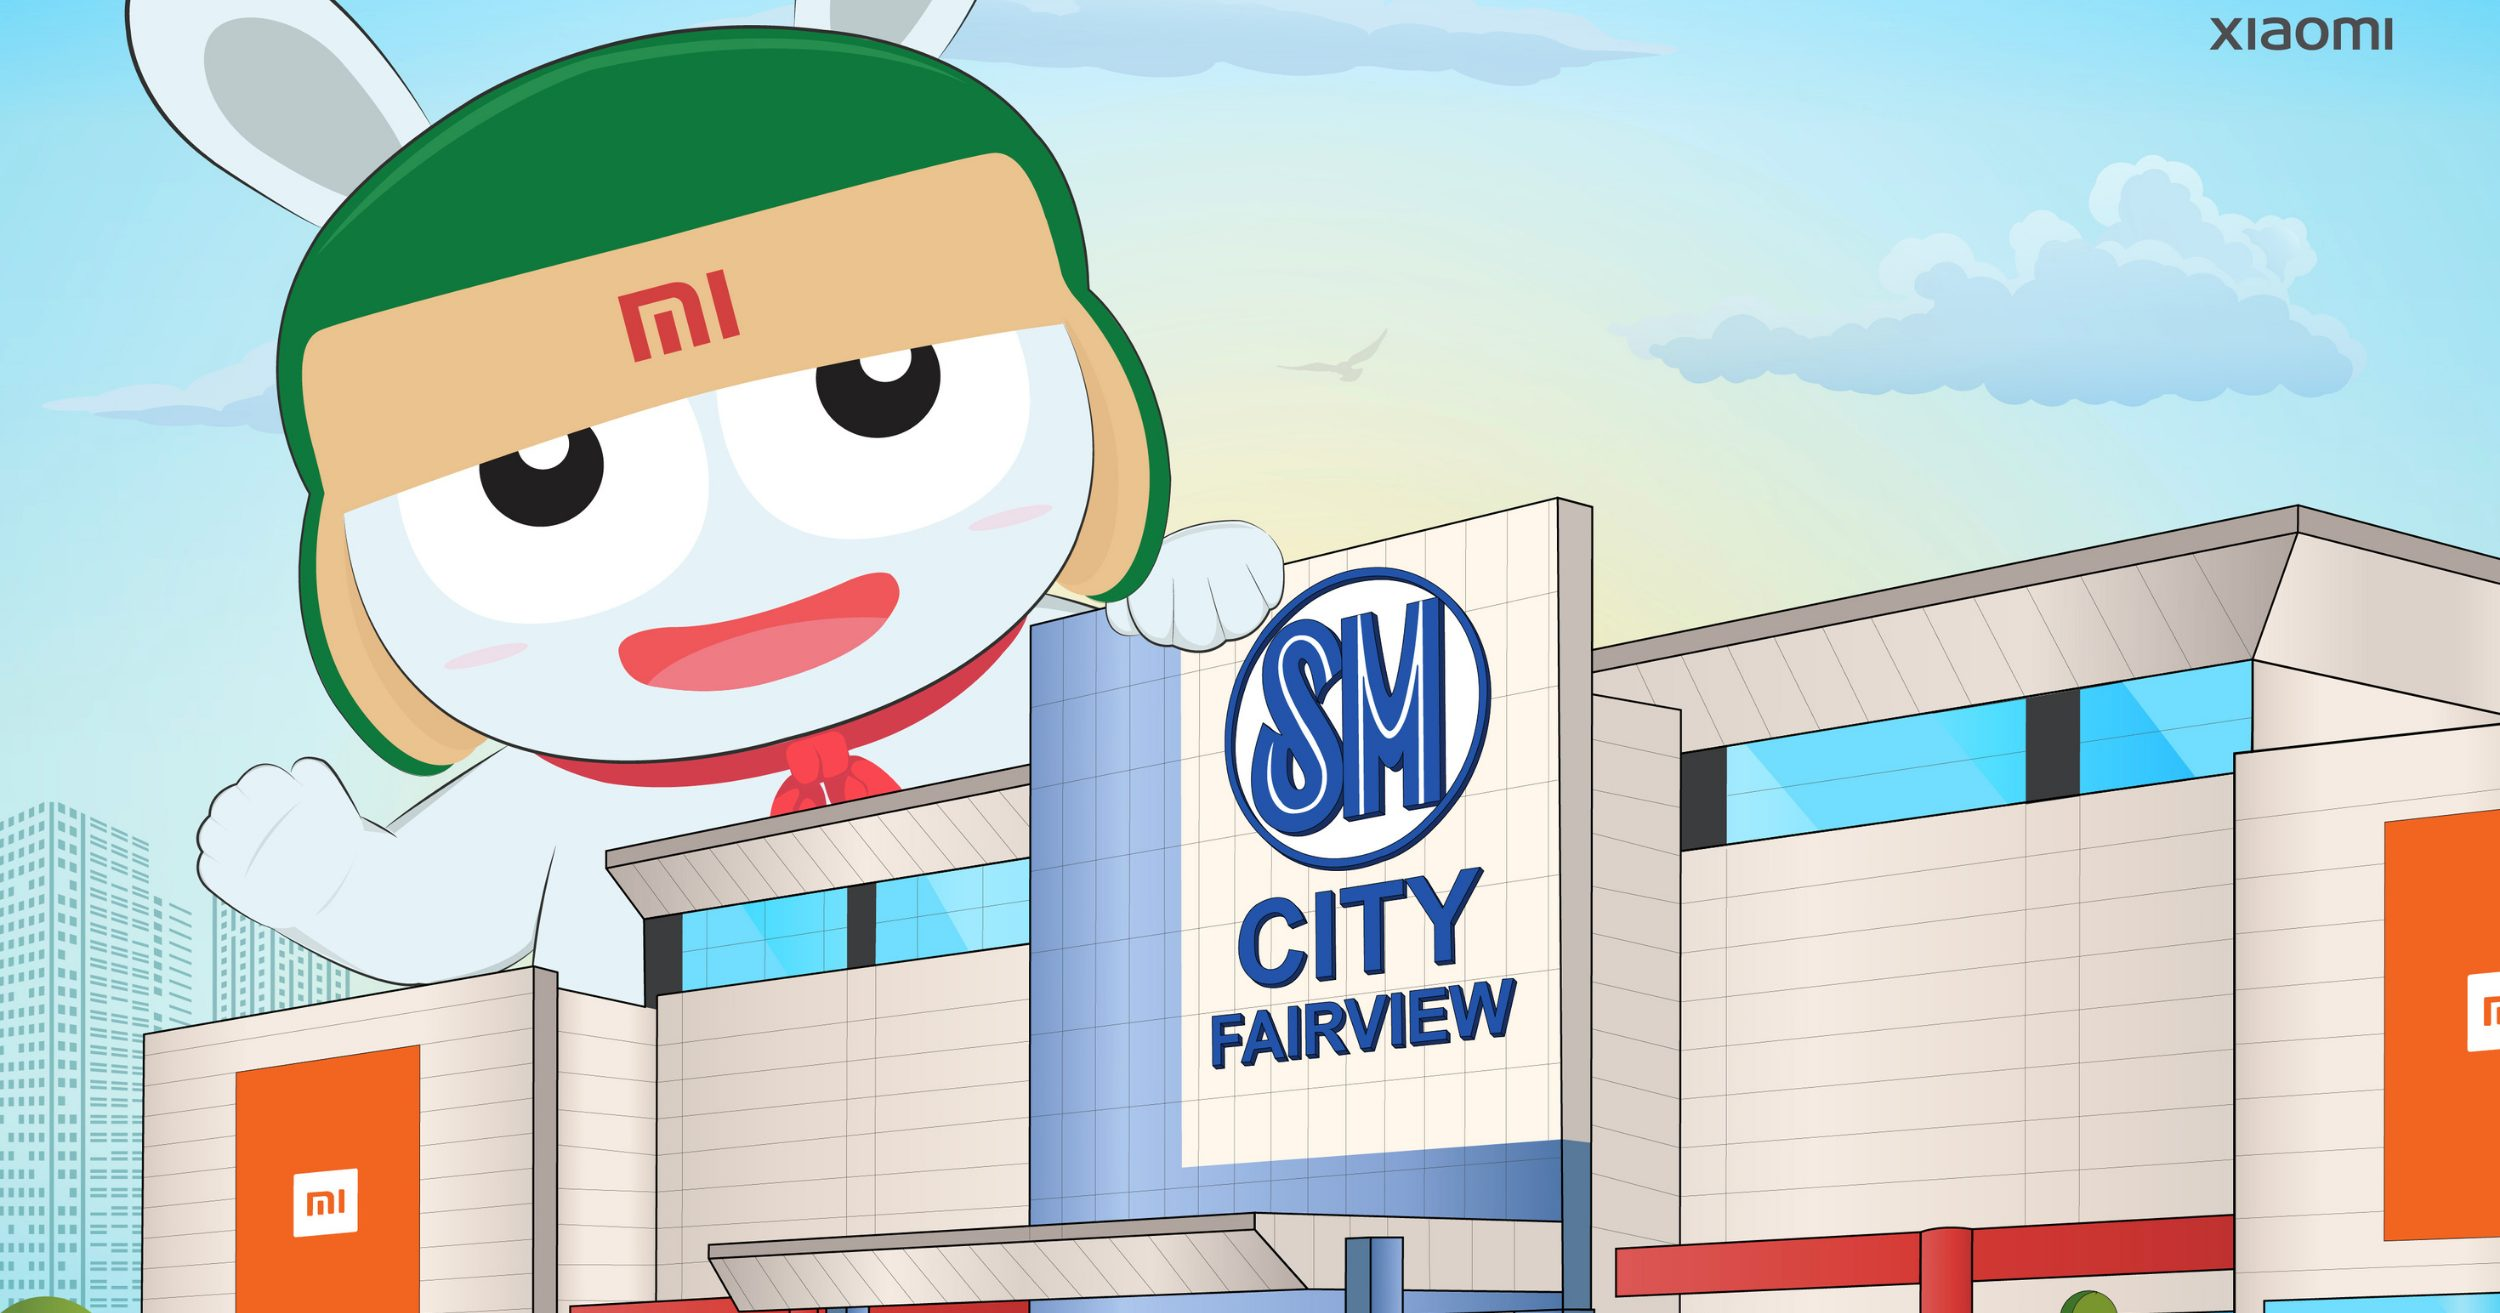 sm-city-fairview-gets-a-new-xiaomi-store